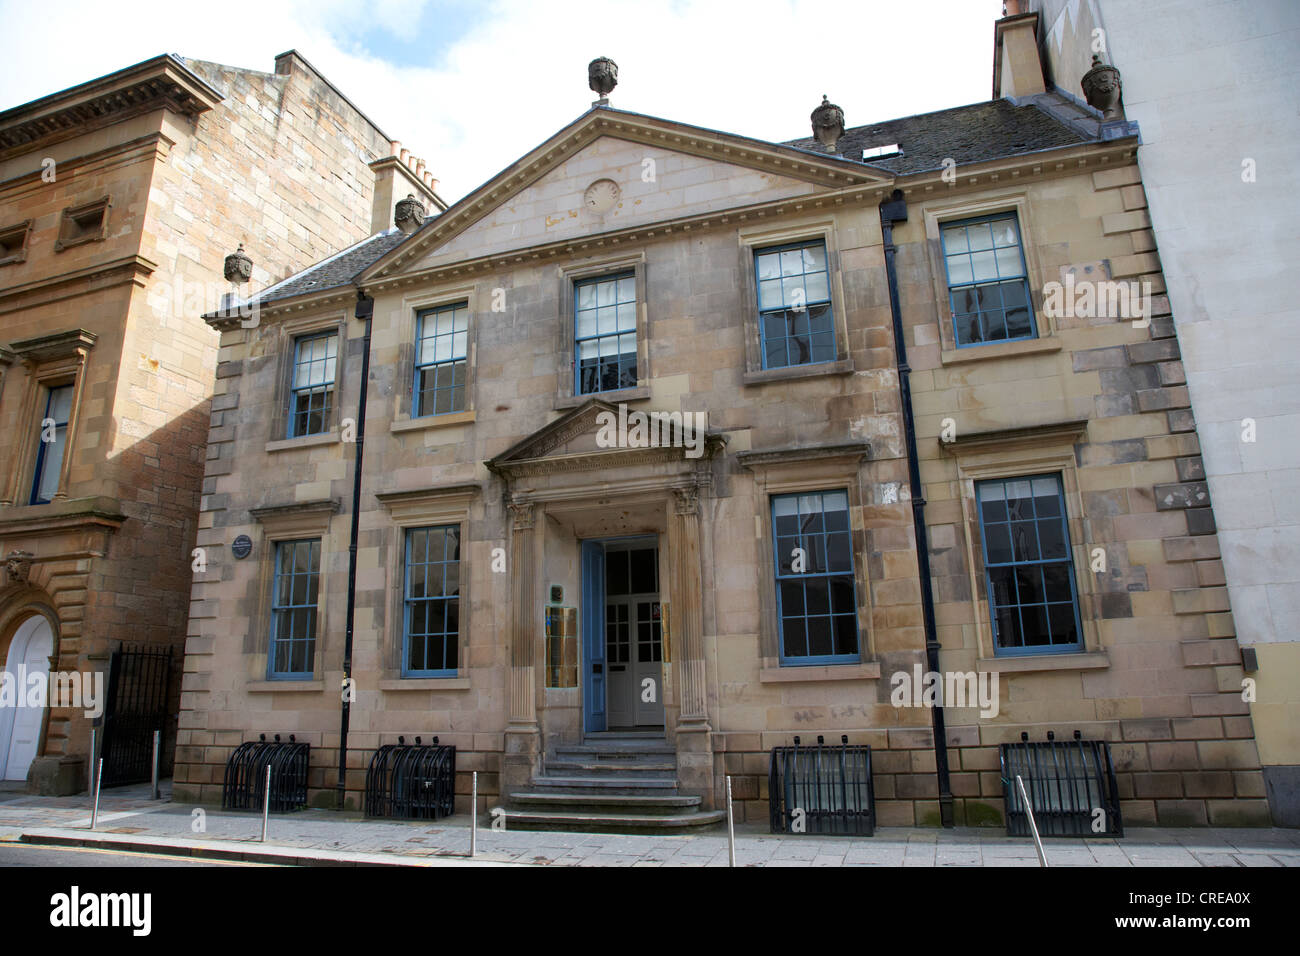 the tobacco merchants house designed by john craig in 1775 in merchant city glasgow scotland uk - Stock Image